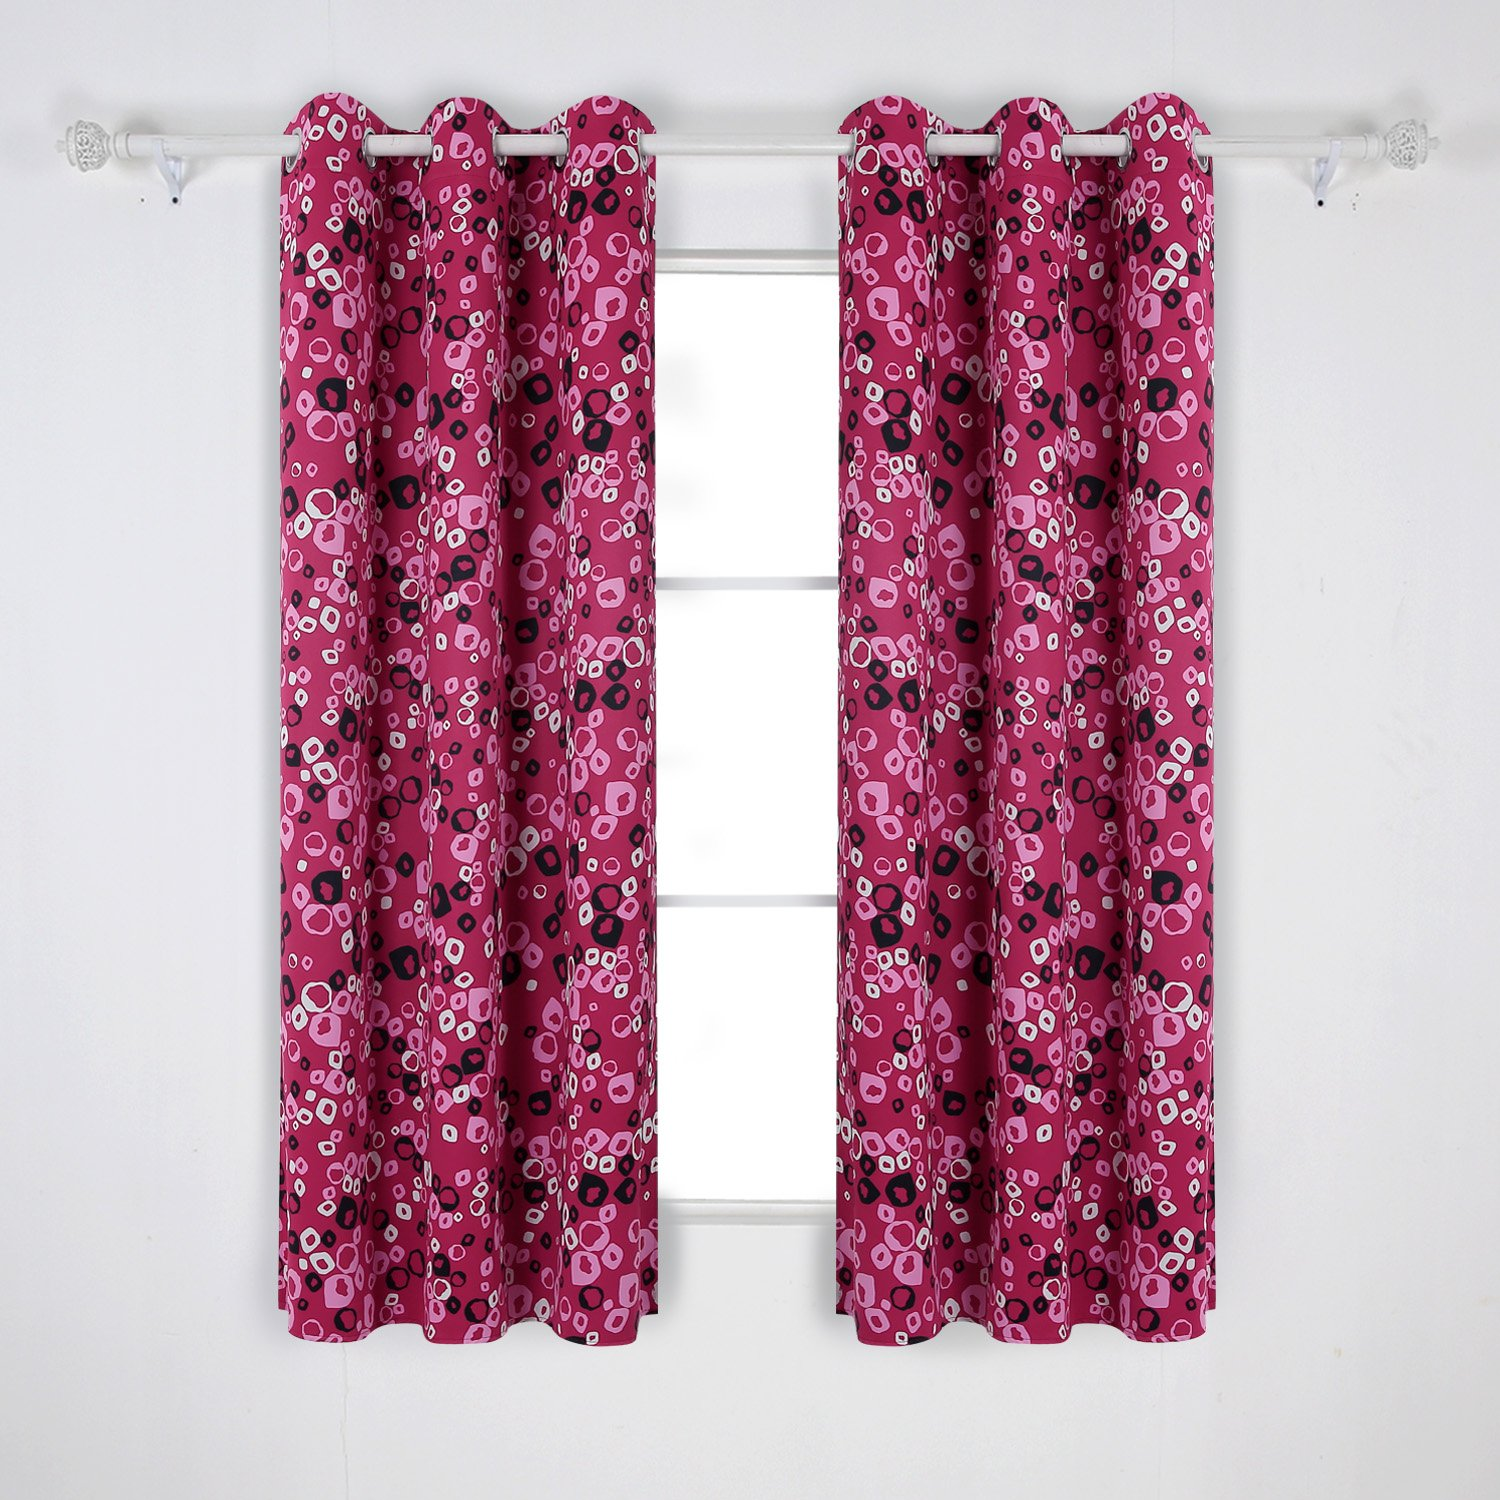 Pink and Rose Deconovo Thermal Insulated Blackout Curtains Grommet Curtains Bubbles Circle Printed for Children Room